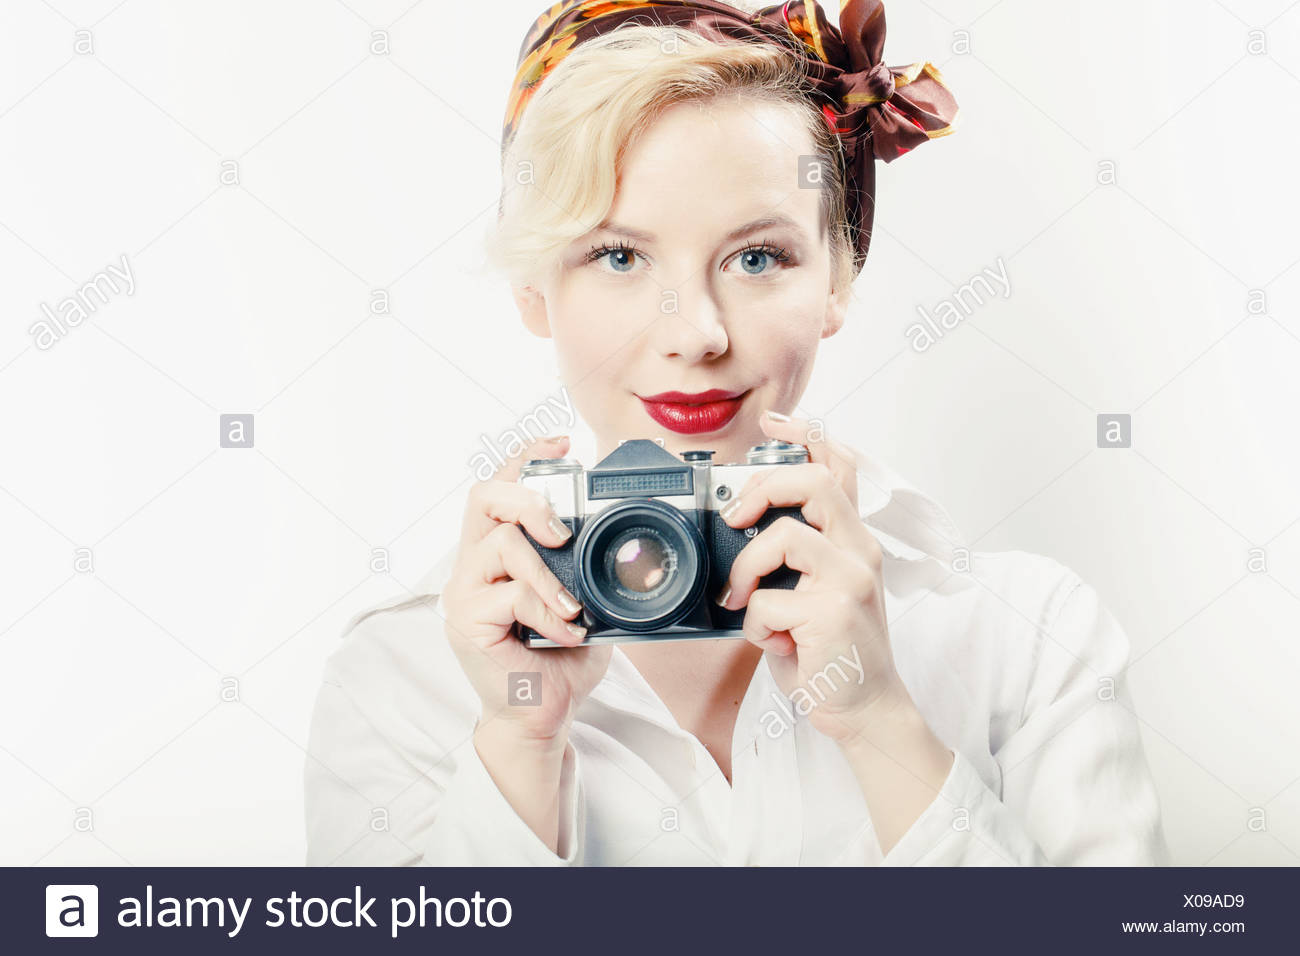 Young Woman Using Photo Camera, Portrait - Stock Image